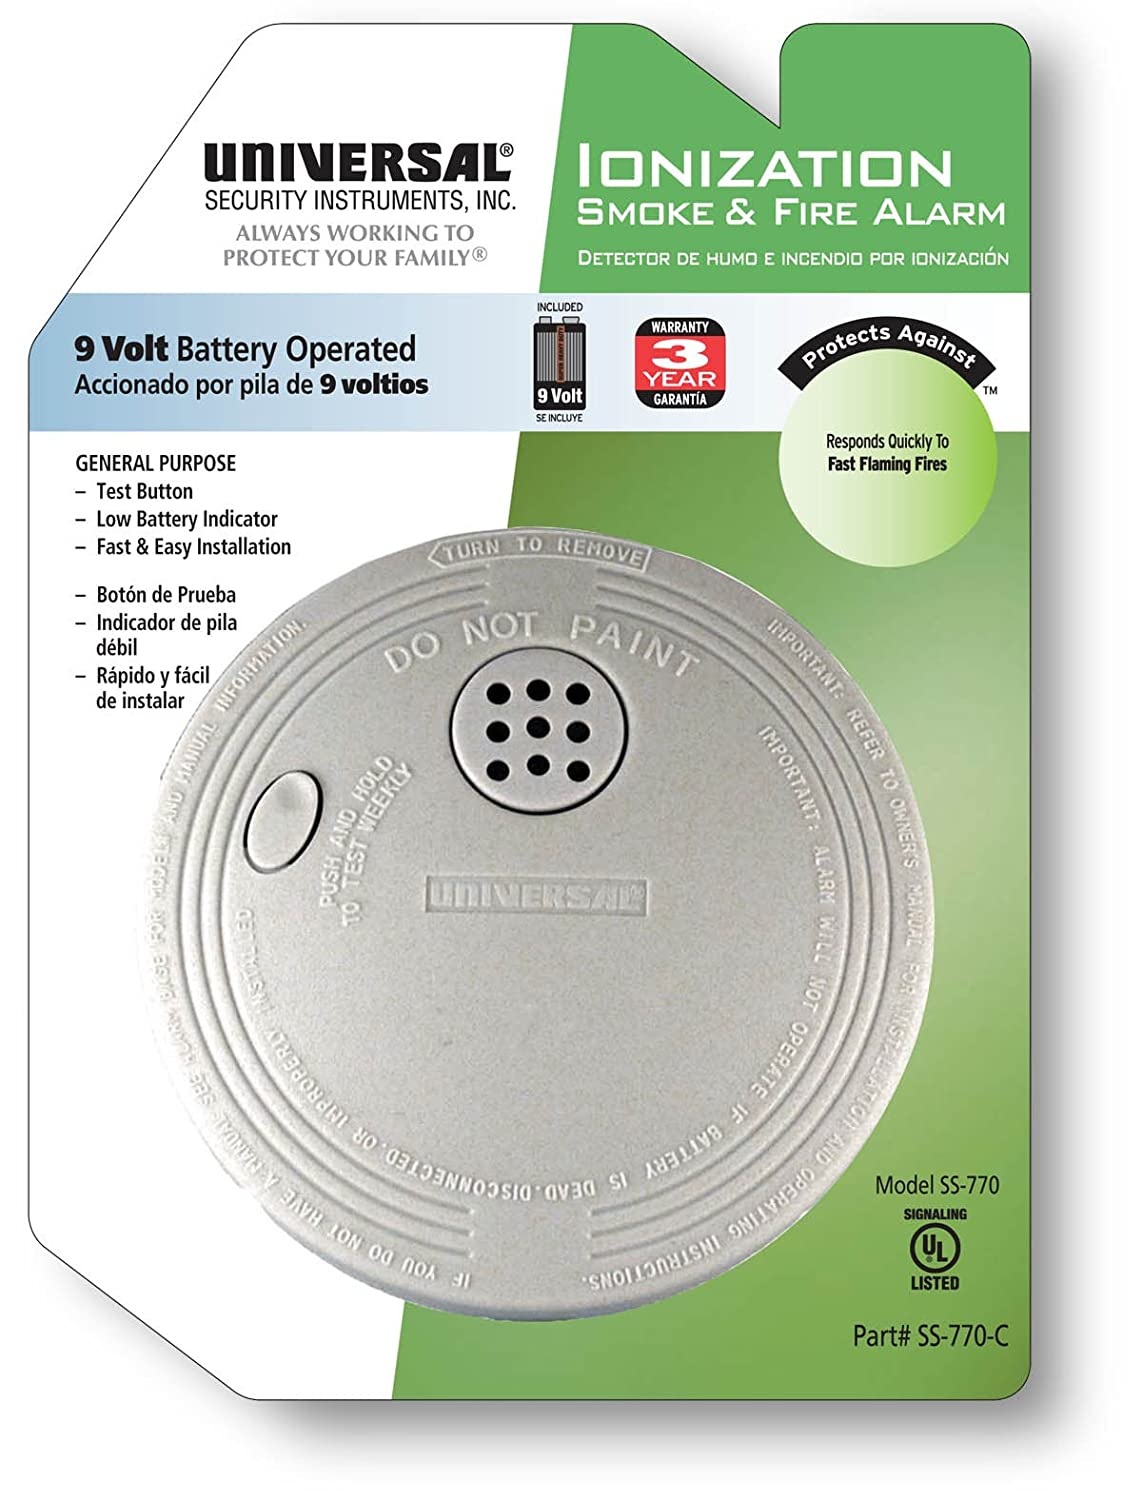 Universal Security Instruments SS-770-C Battery Powered Ionization Smoke and Fire Alarm - Smoke Detectors - Amazon.com